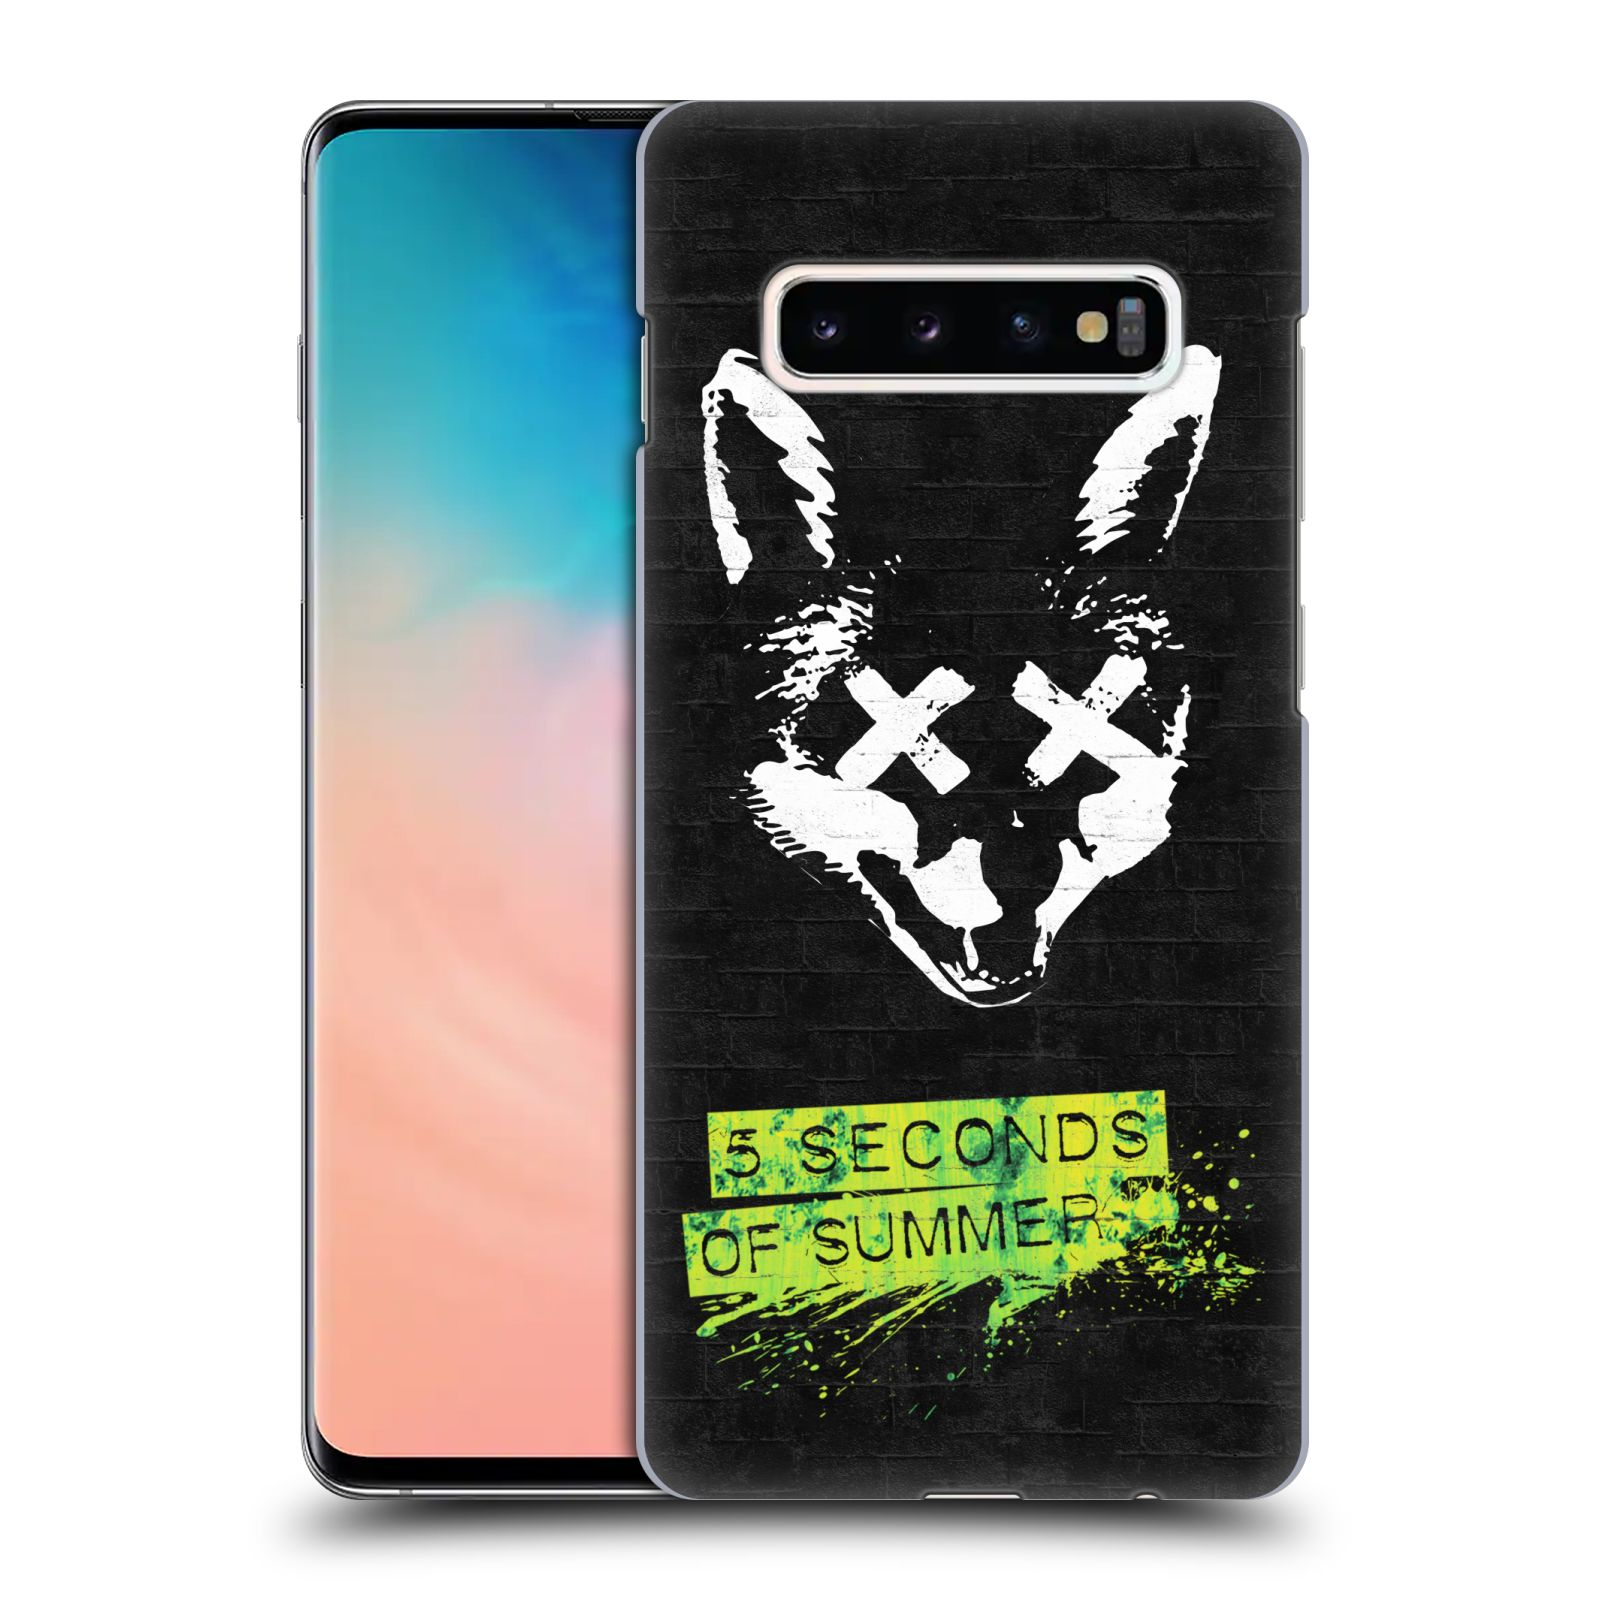 Plastové pouzdro na mobil Samsung Galaxy S10 Plus - Head Case - 5 Seconds of Summer - Fox